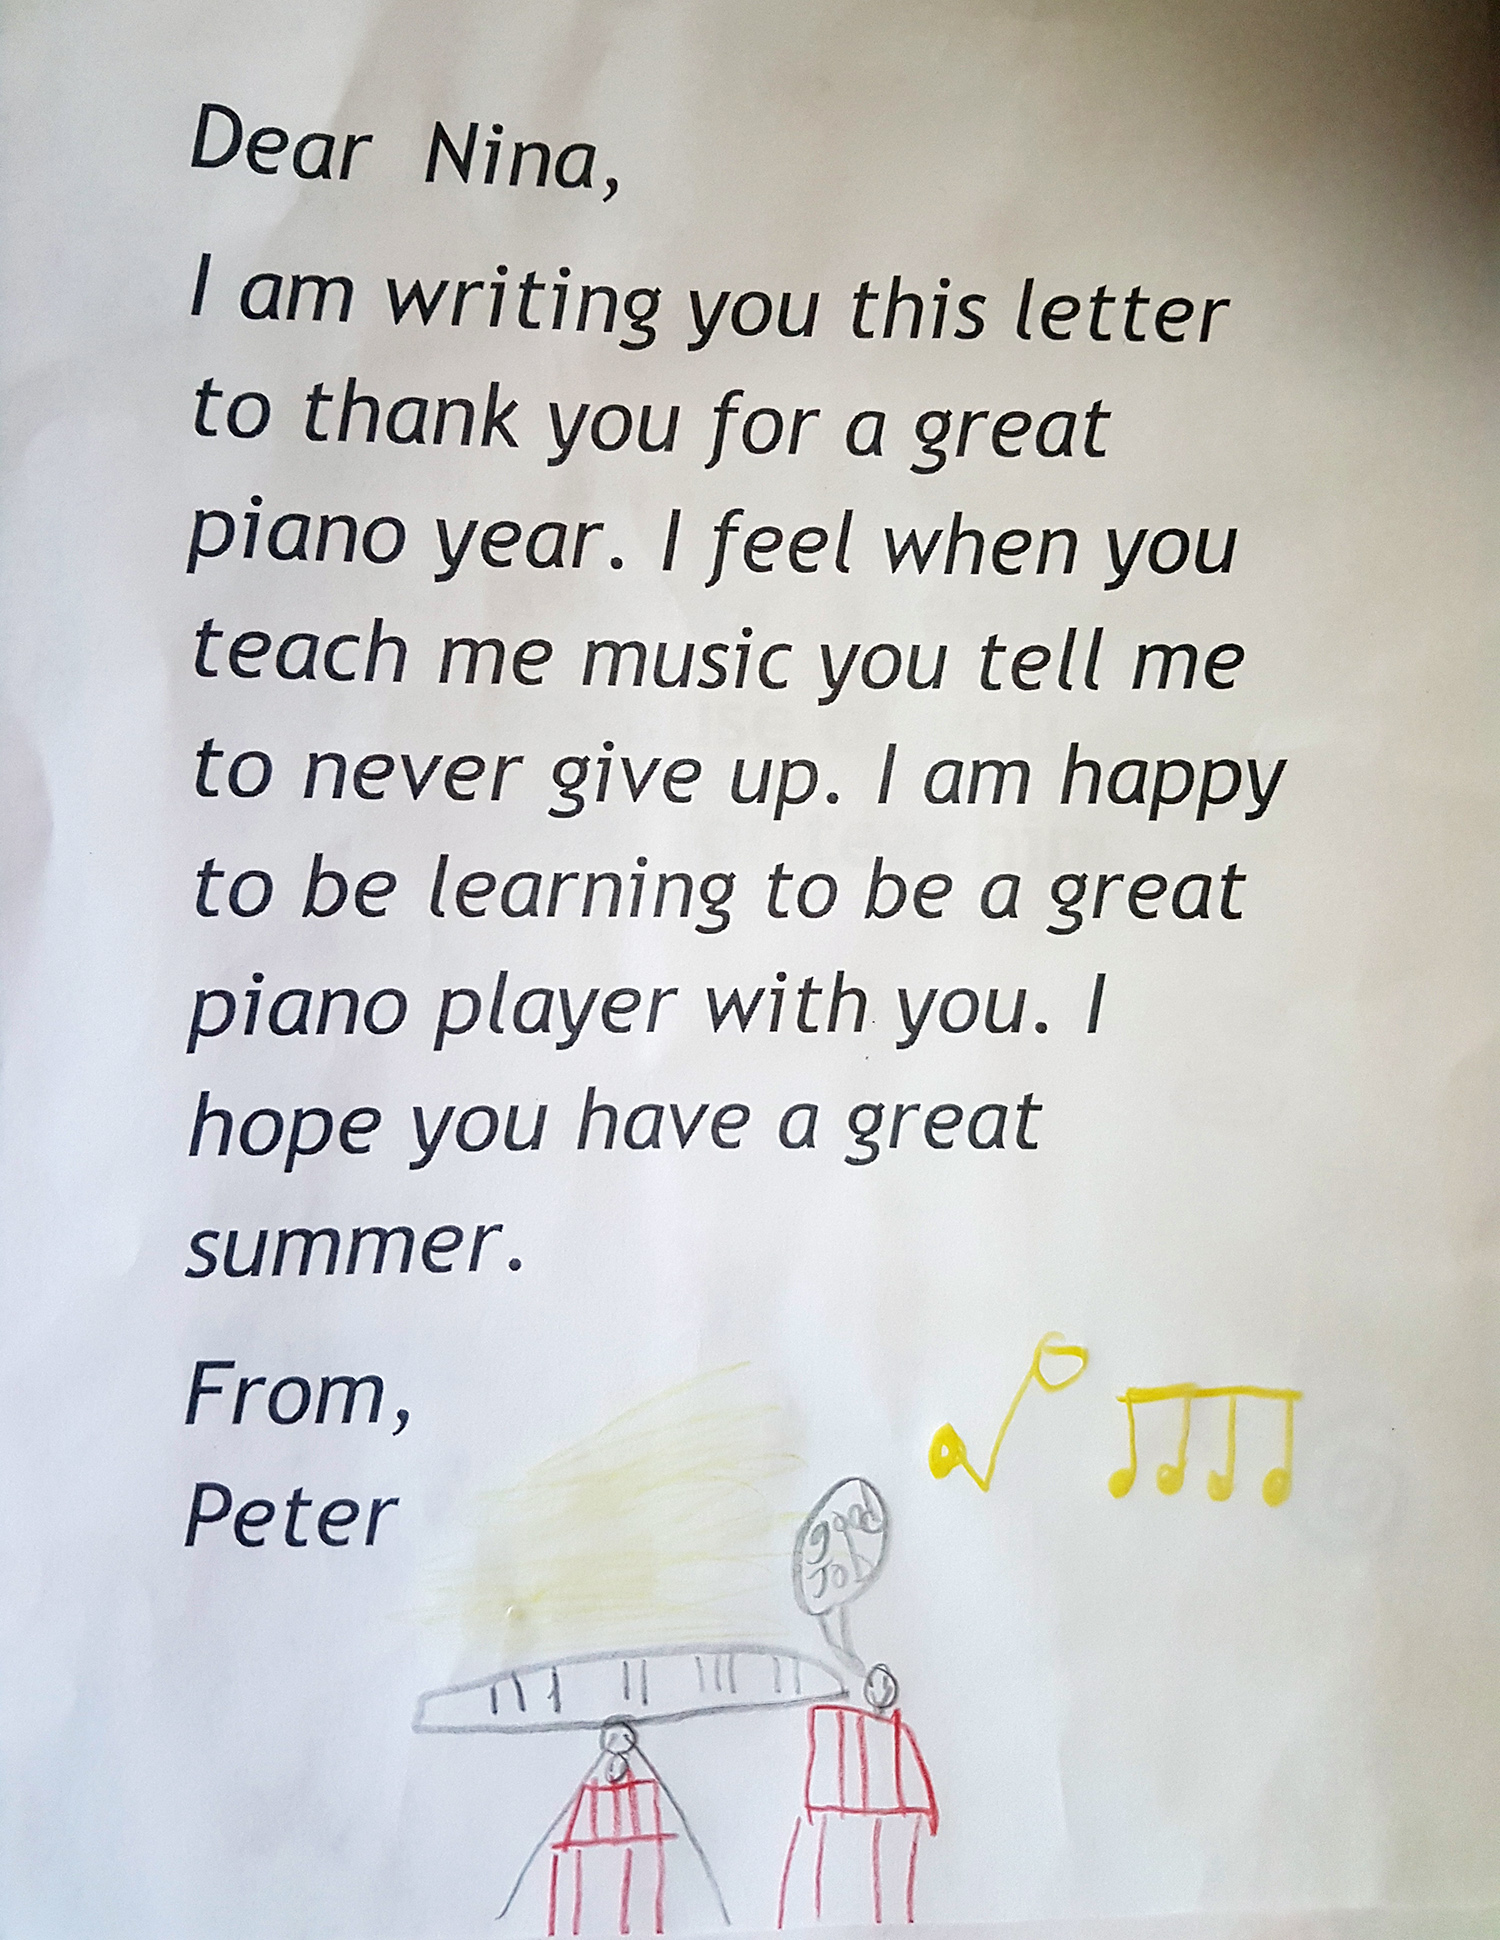 A Thank You Card To Piano Teacher Nina From Her Student Peter